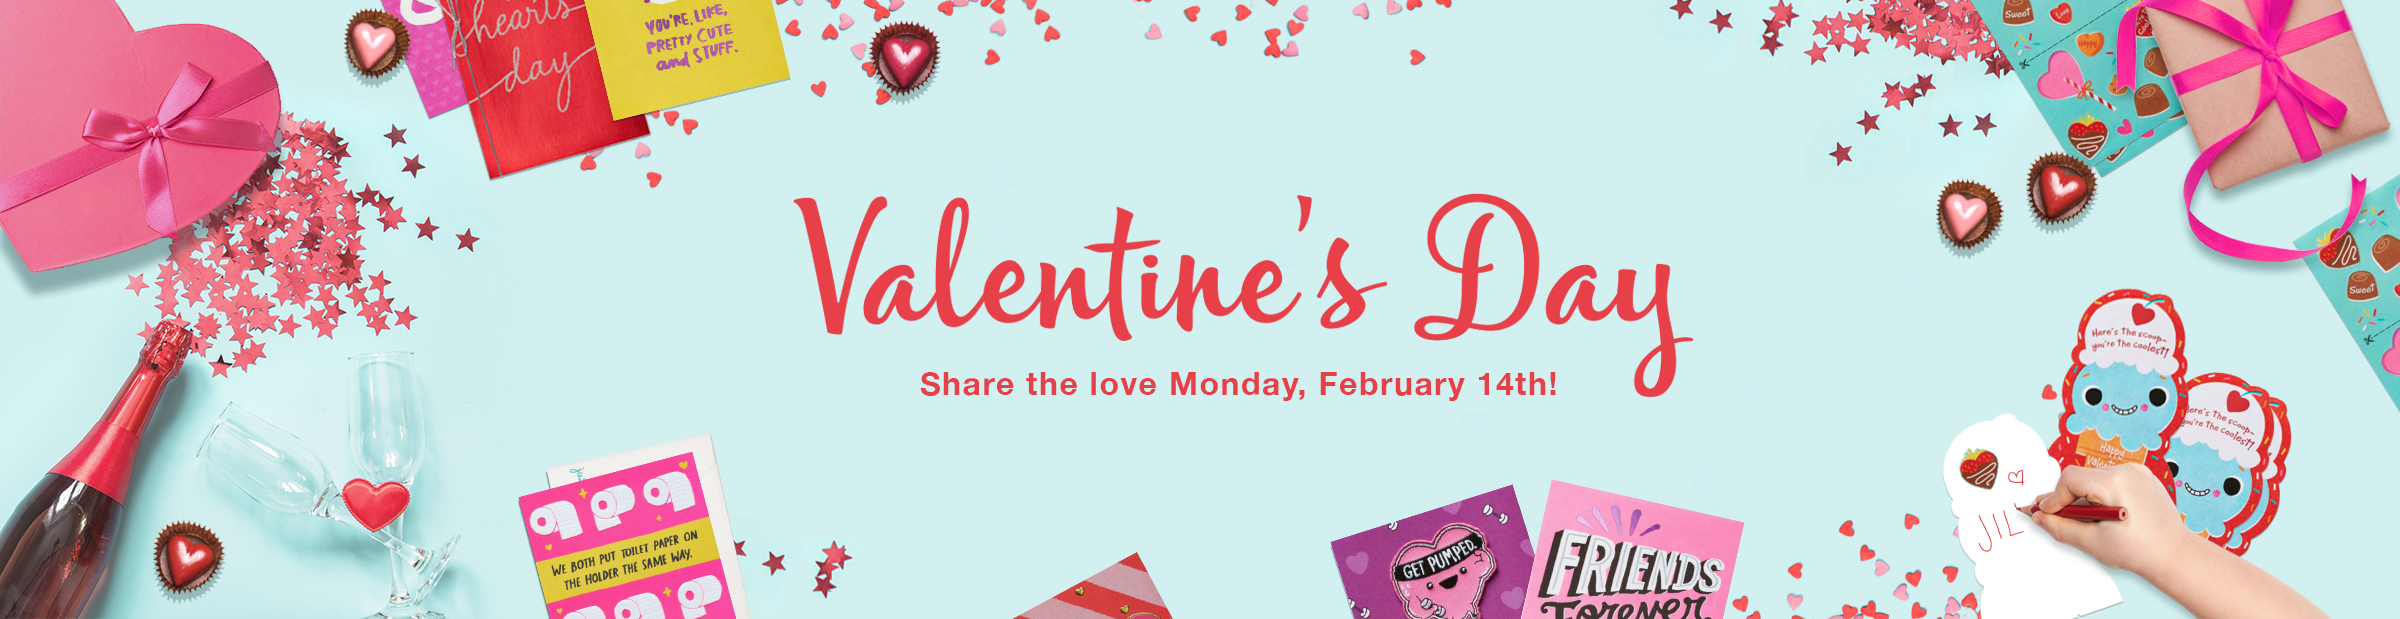 Valentine's Day Product, Cards, Gifts, Party Goods and Gift Wrap.